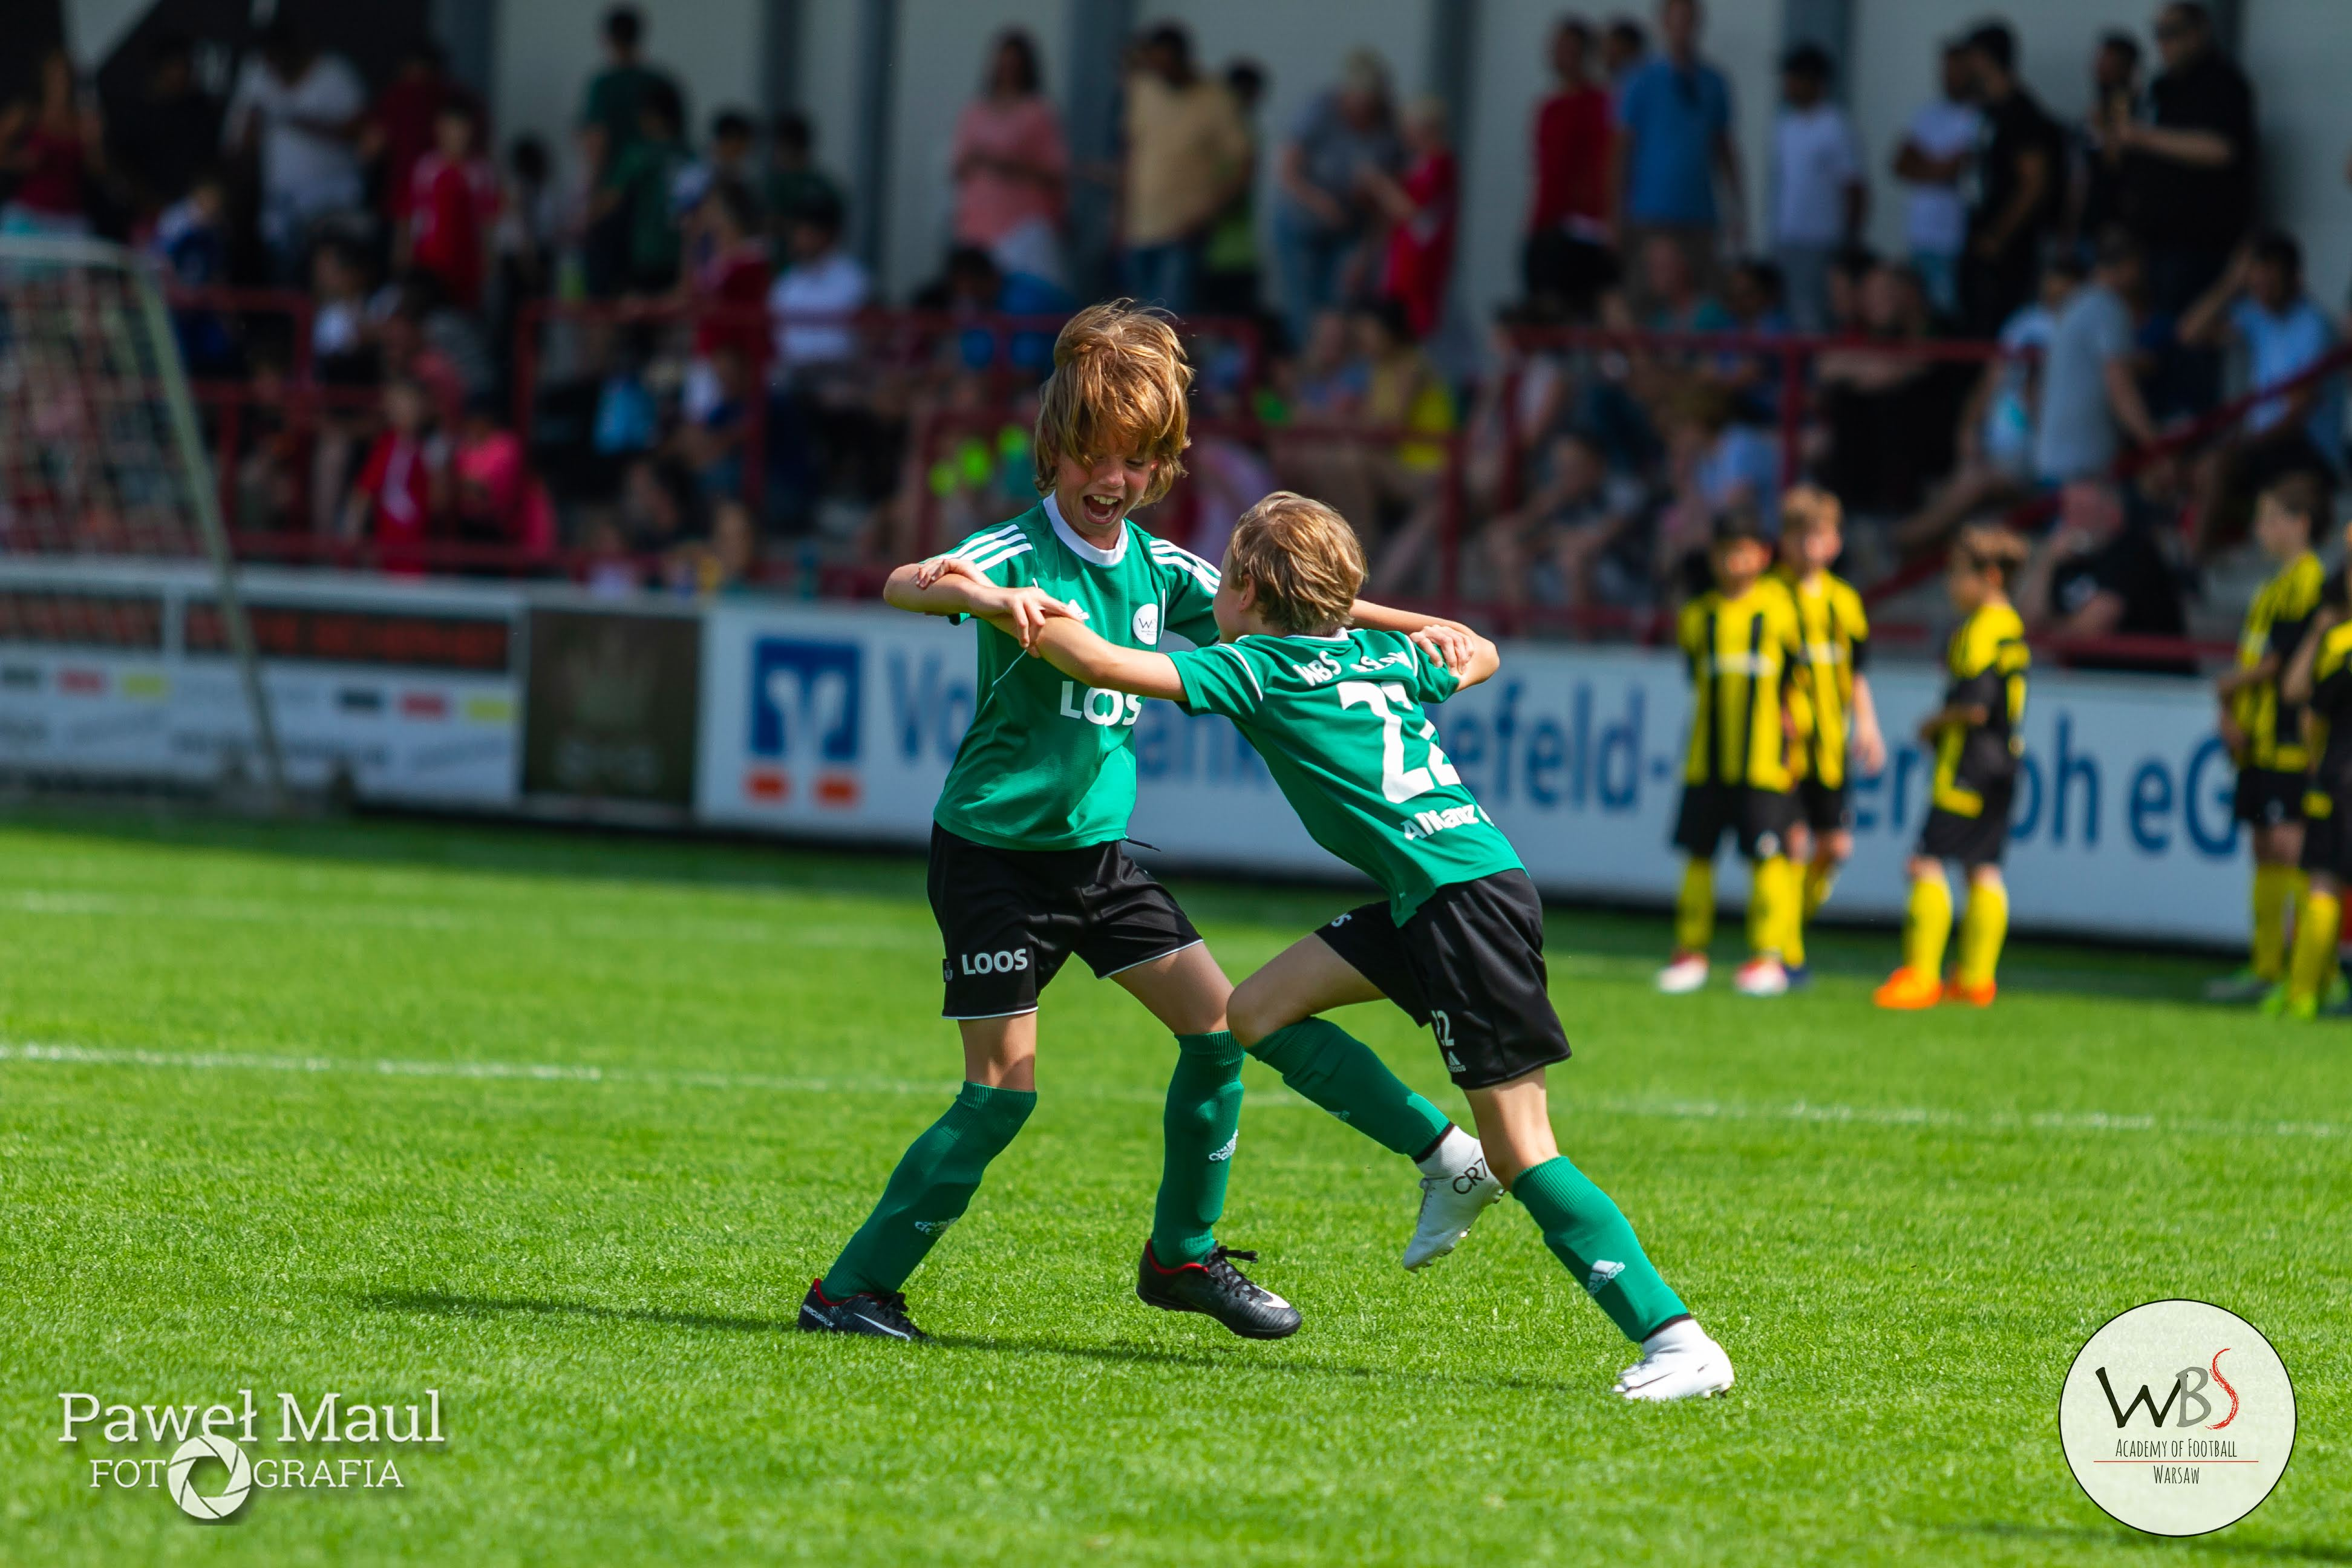 PMF_WBS_JUNIORCUP_2018_0551__1_.jpg